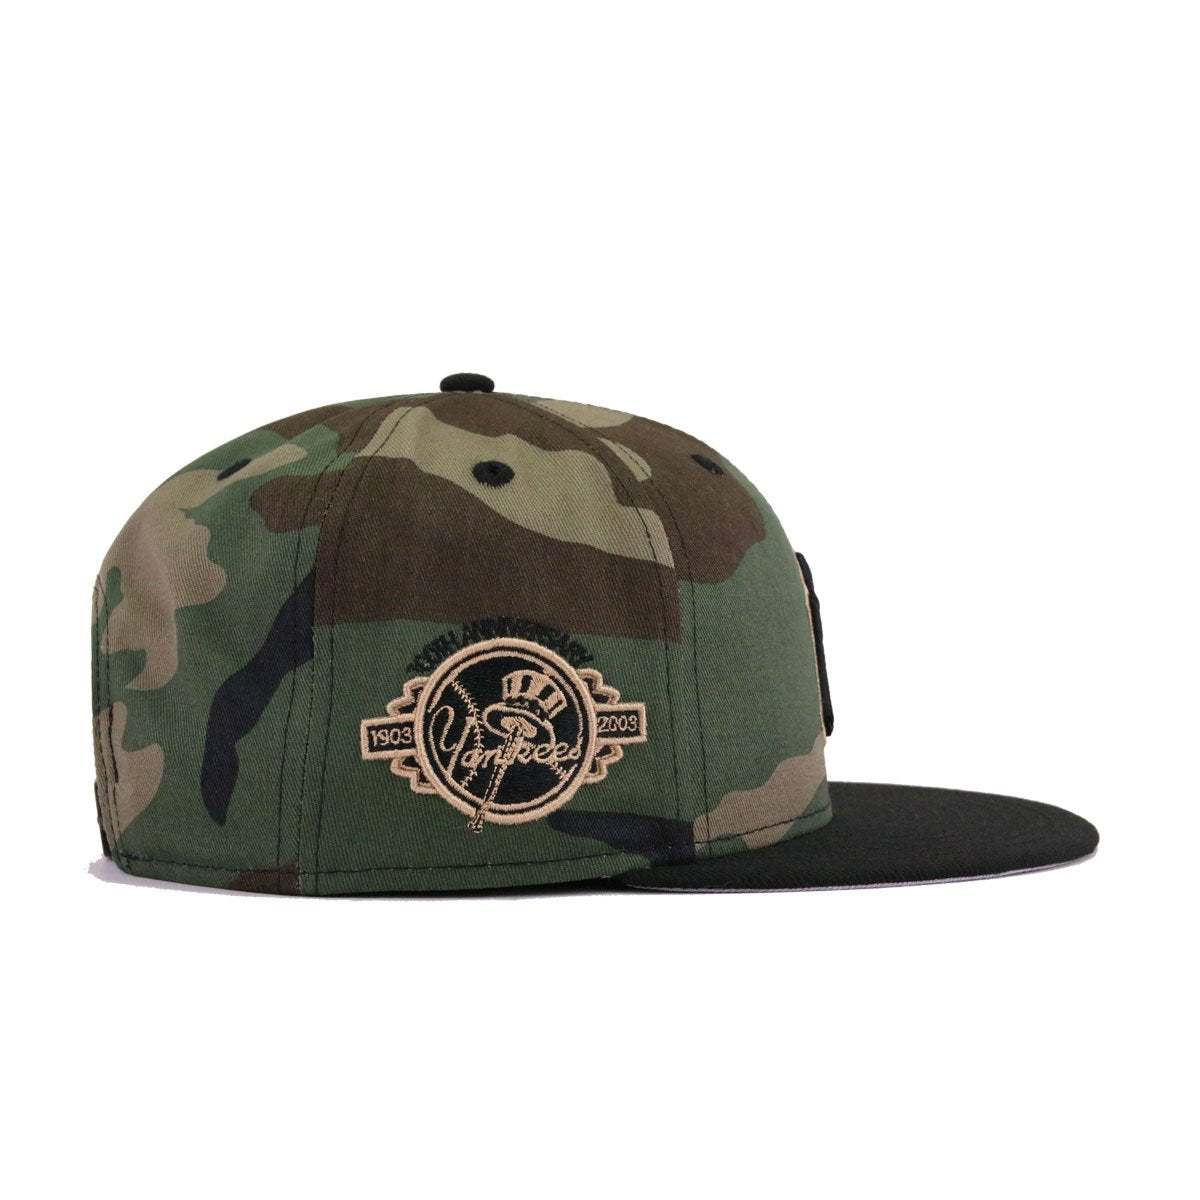 check out d1705 e7dc8 New York Yankees Woodland Camouflage Black 100th Annivesary New Era 9Fifty  Snapback